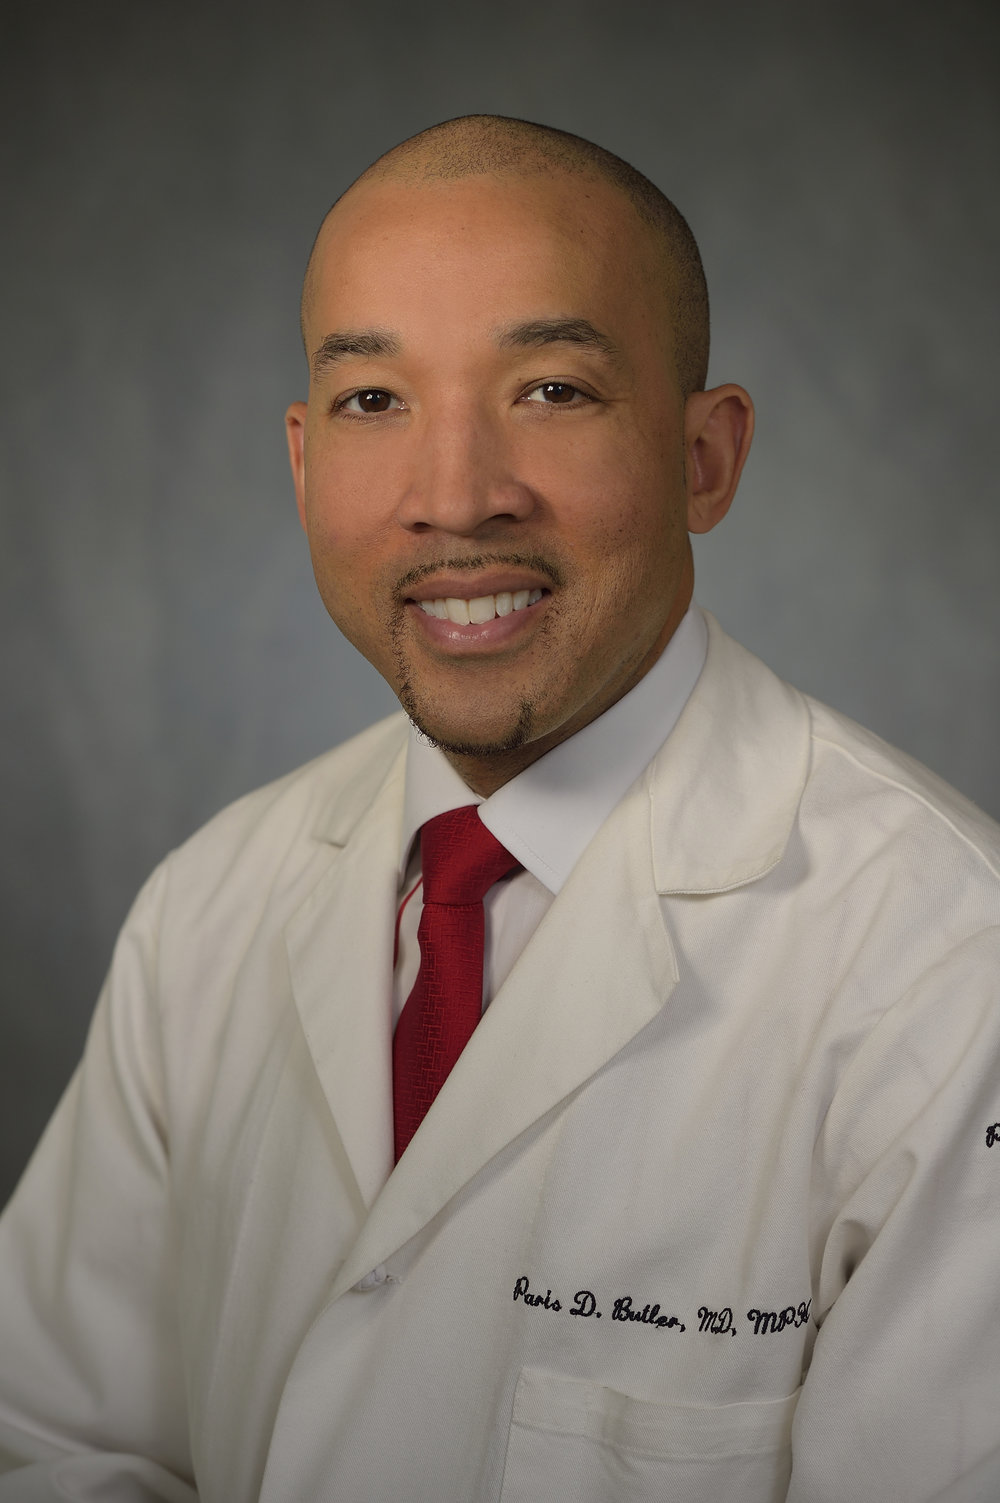 Paris D. Butler, MD, MPH